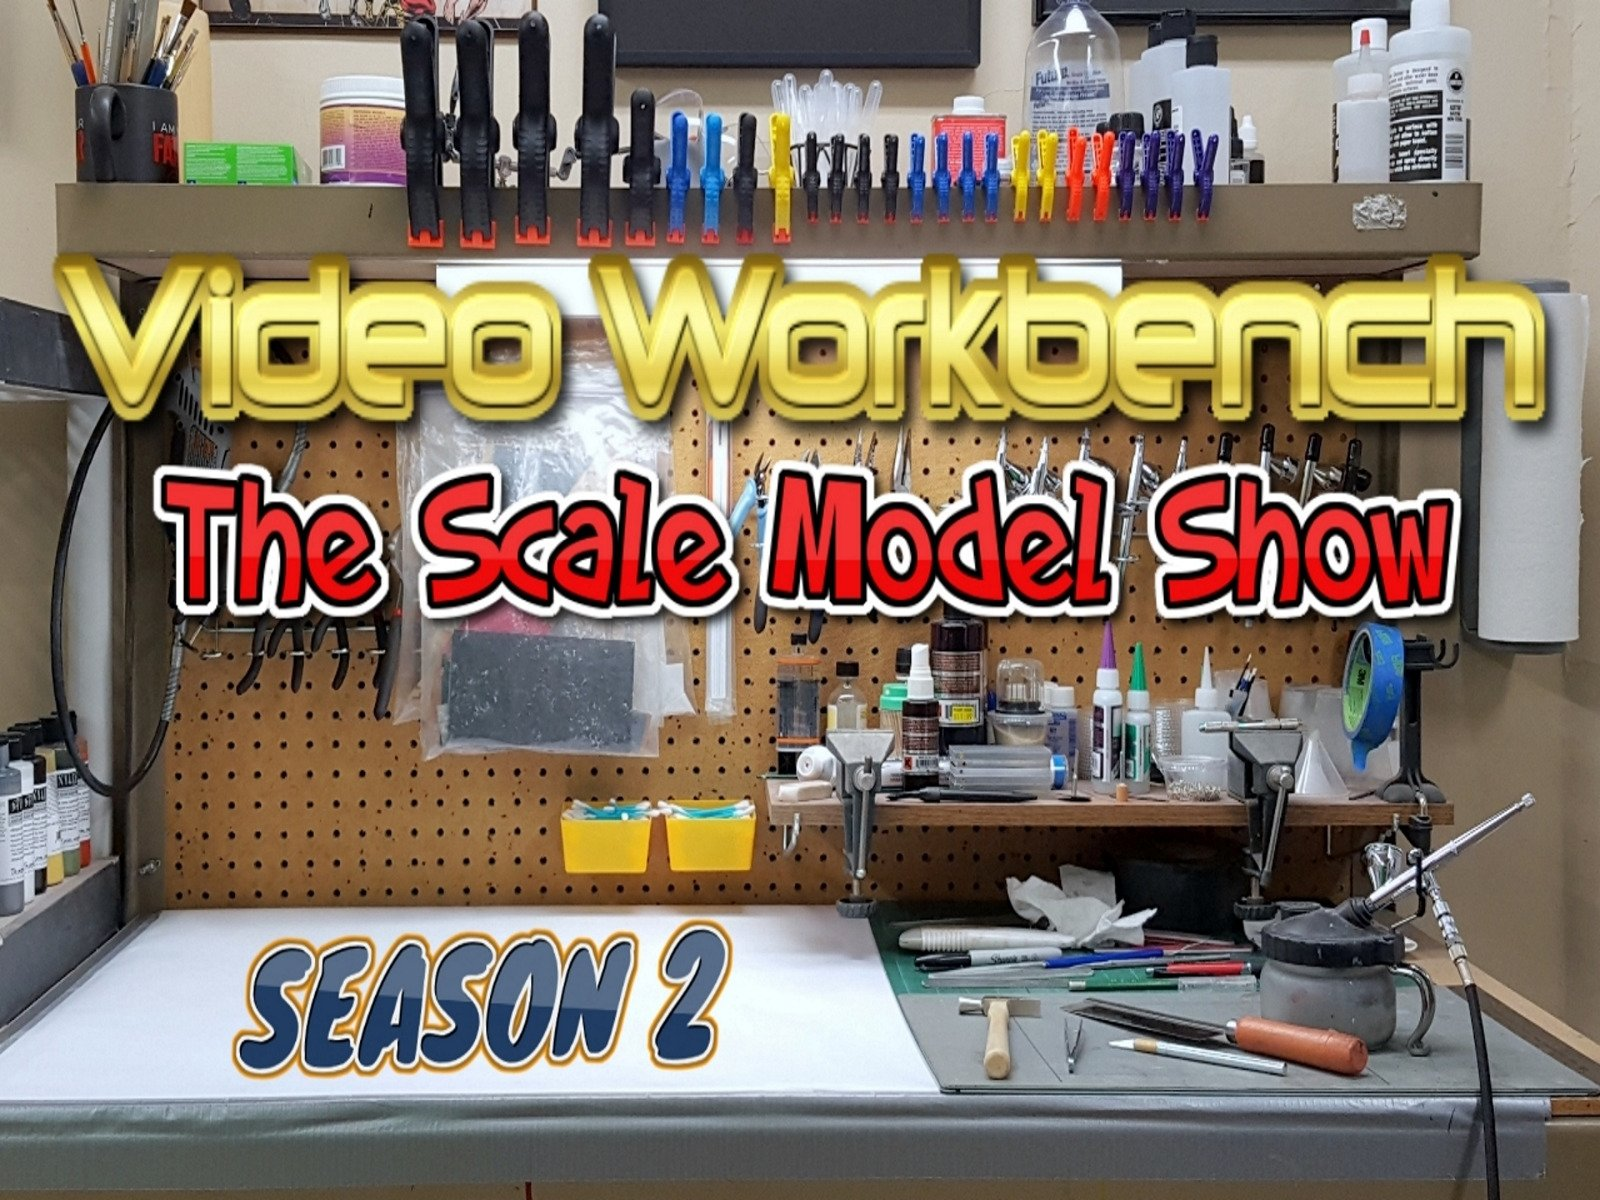 Video Workbench: The Scale Model Show - Season 2